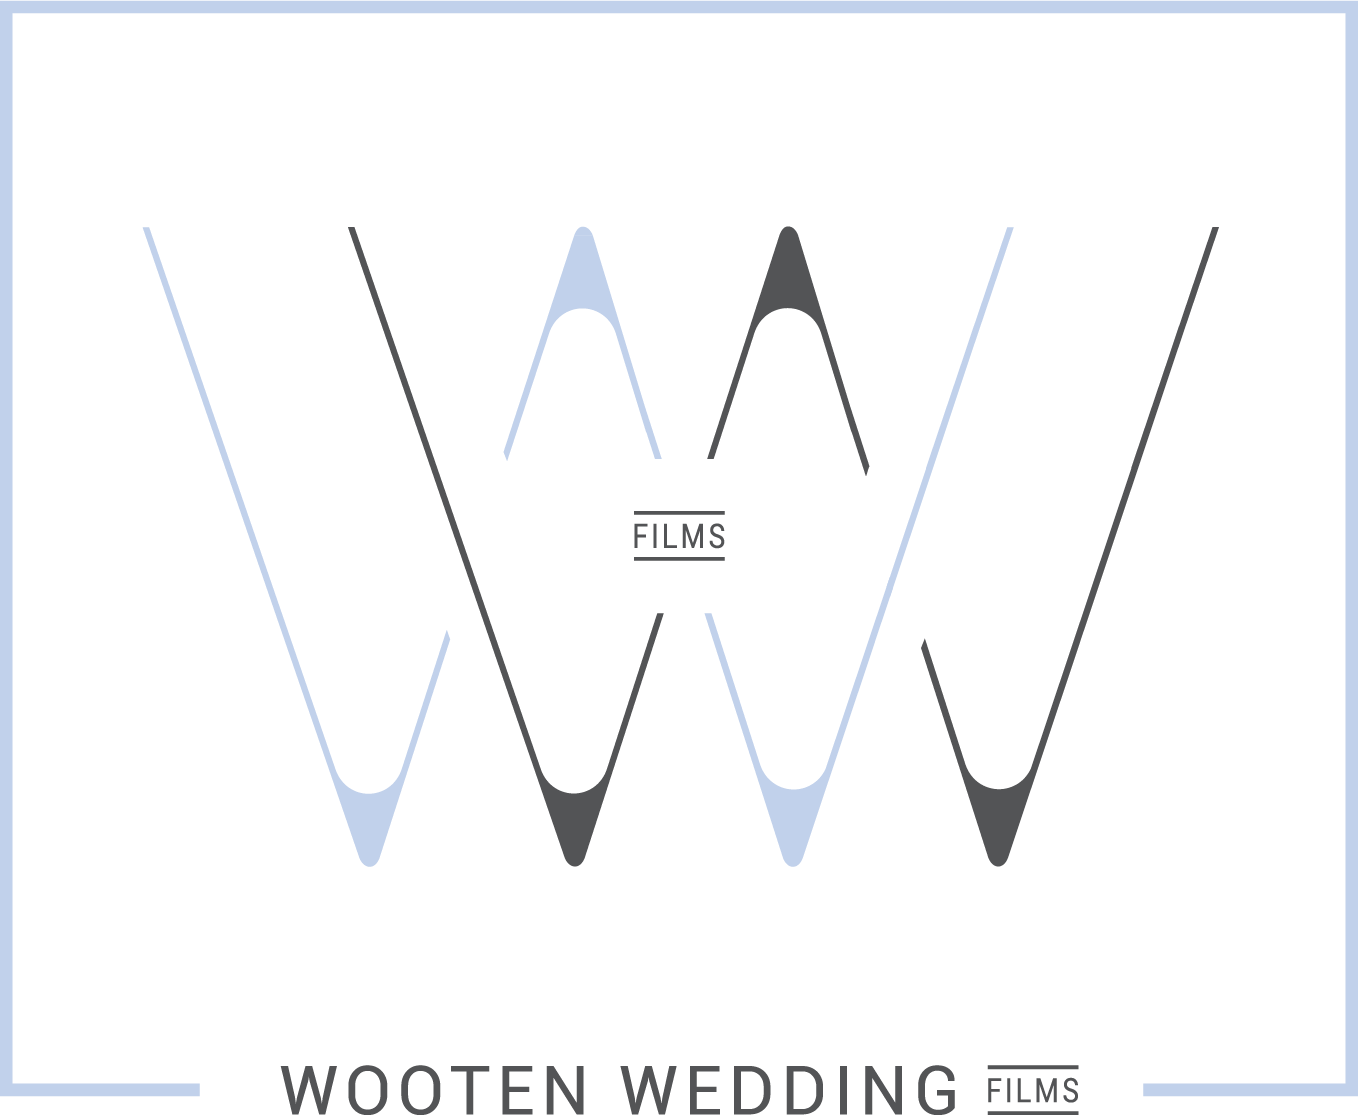 Wooten Wedding Films